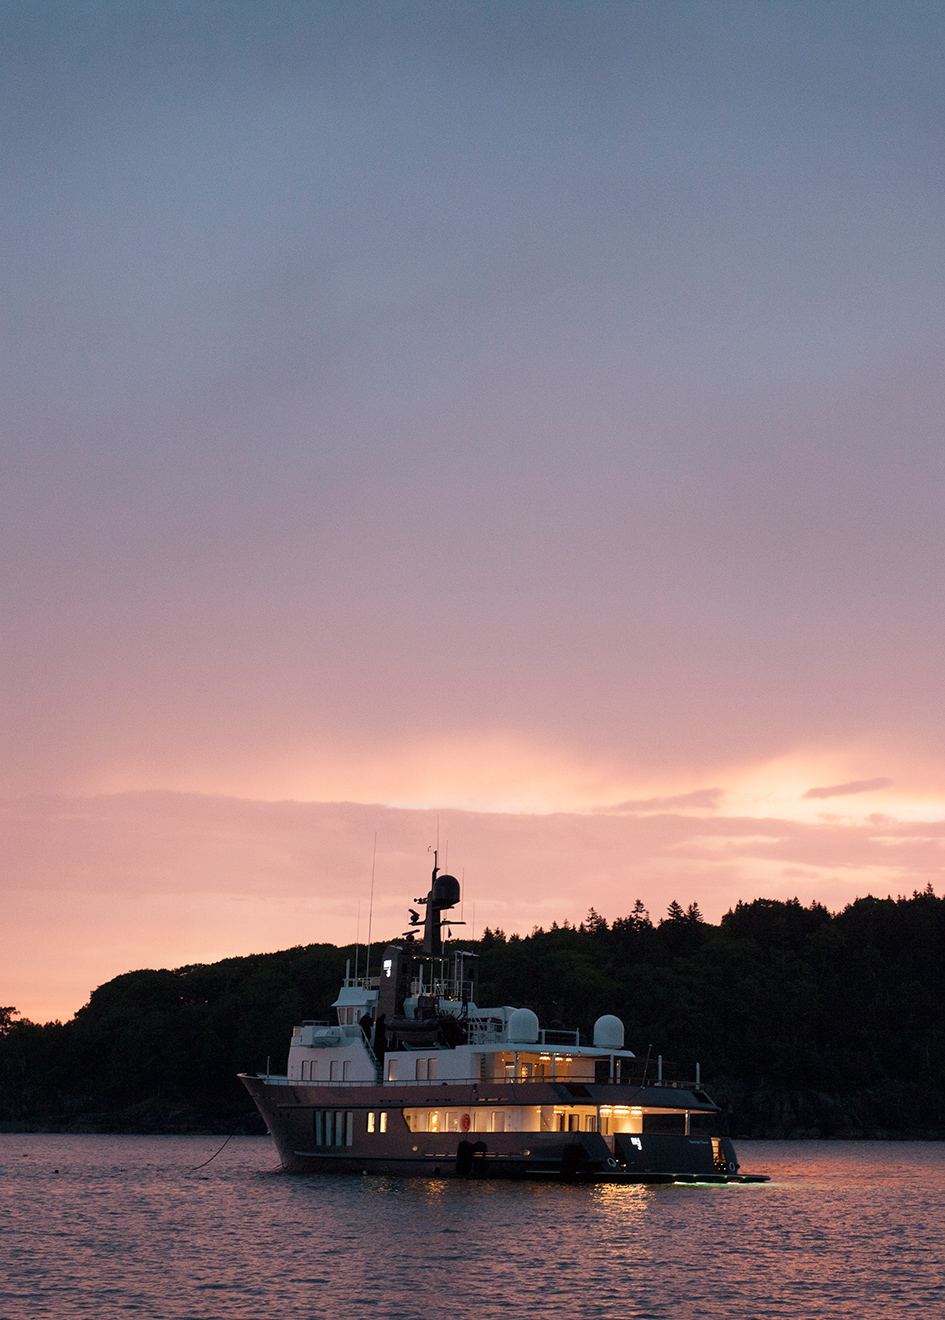 sunset-shot-of-rmk-marine-explorer-yacht-rh3